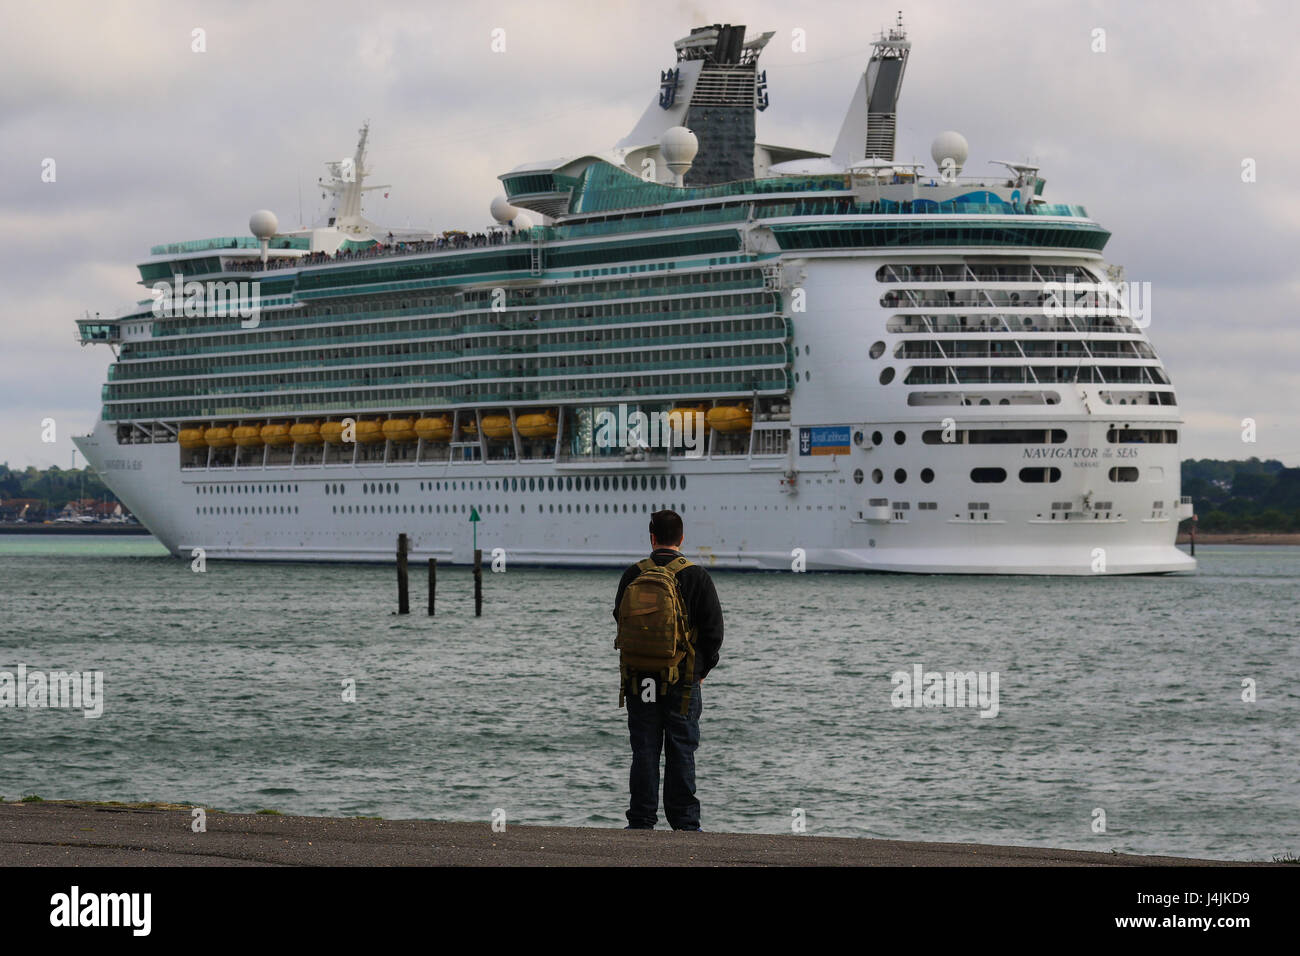 A person watches on at Royal Caribbean's MS Navigator of the Seas departs Southampton Port. - Stock Image